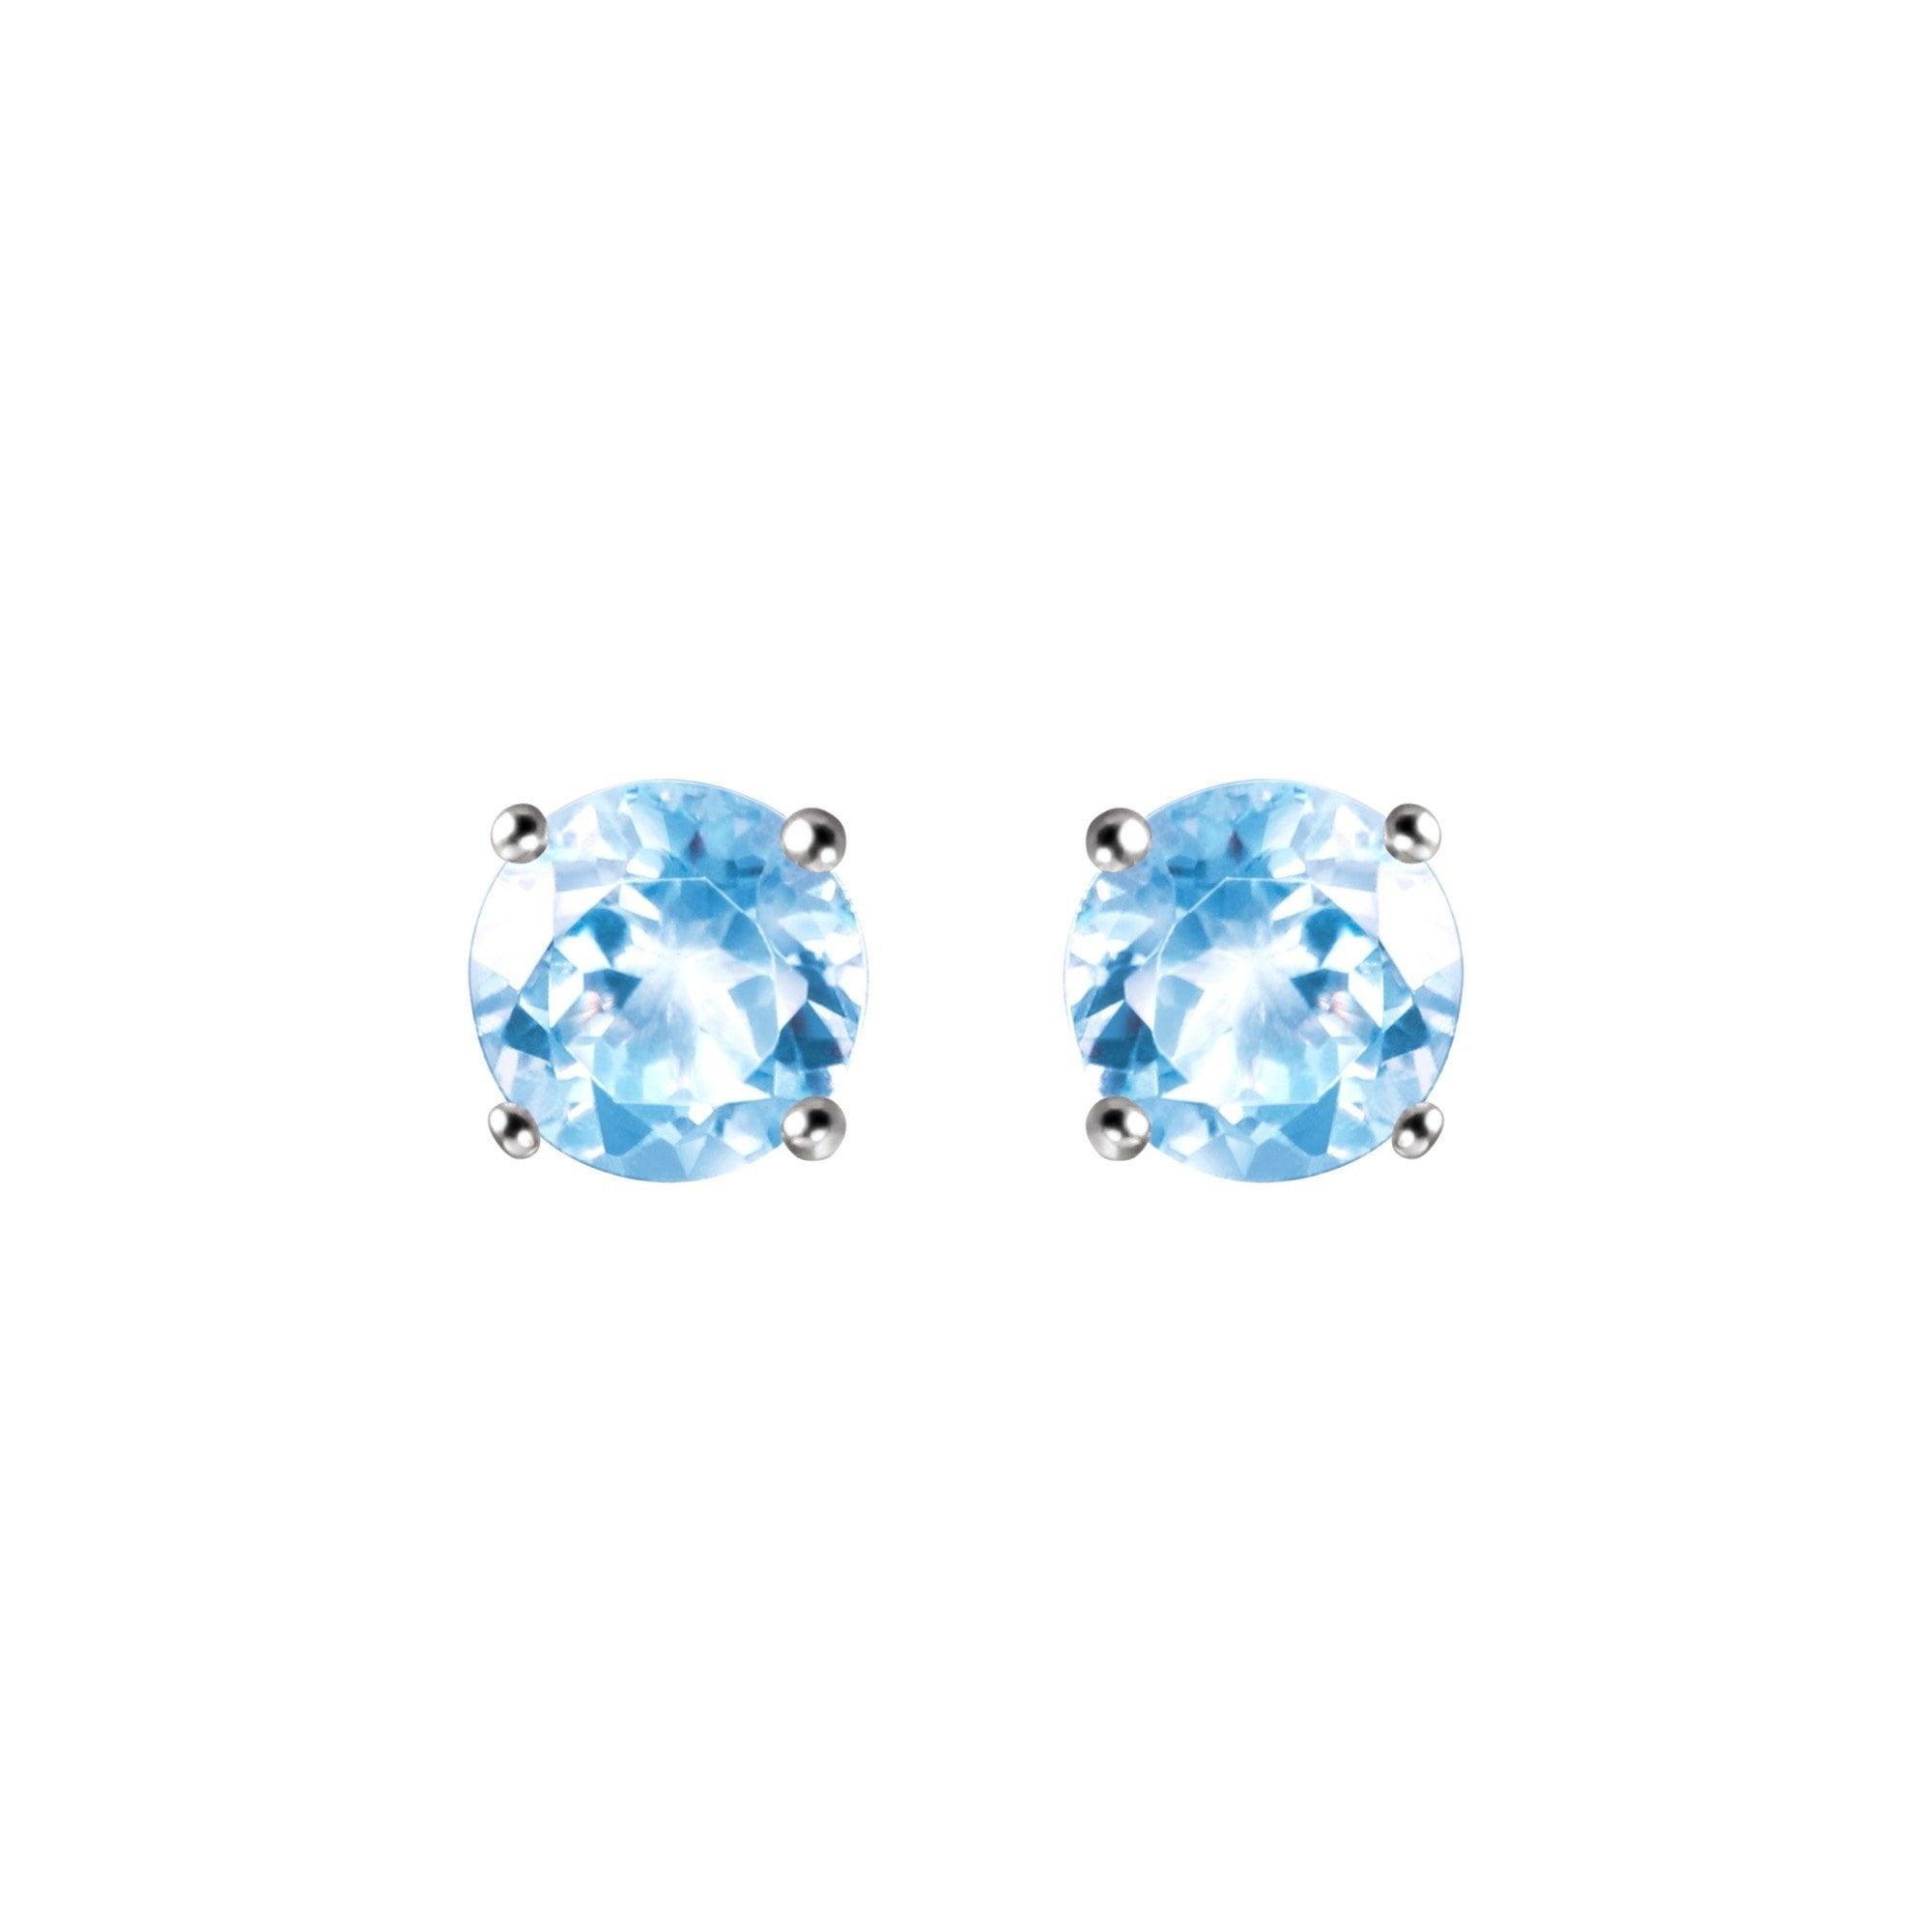 high natural il carat fullxfull cushion pale sapphire clarity listing cut blue